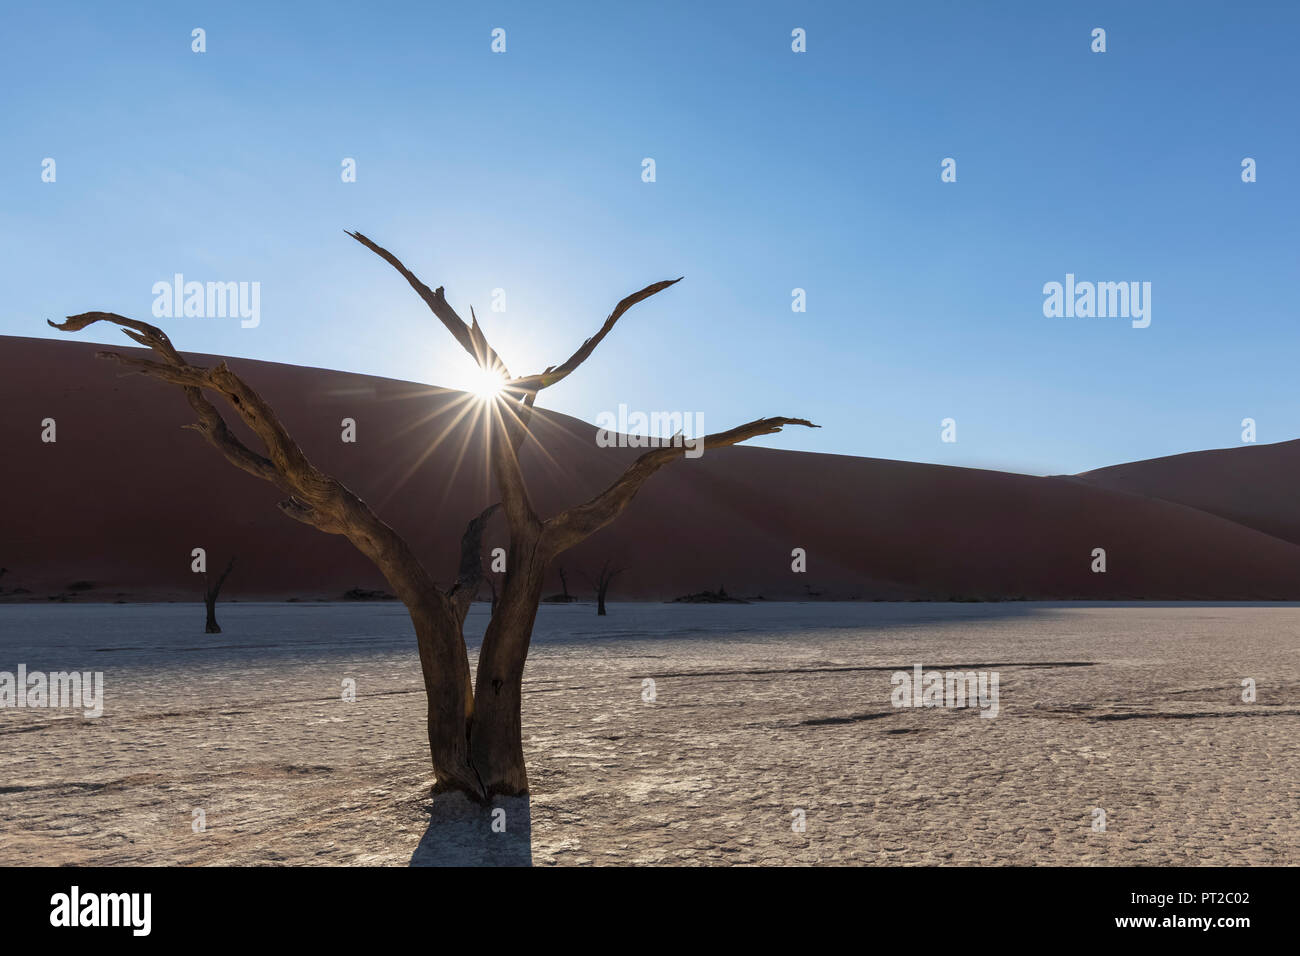 Africa, Namibia, Namib-Naukluft National Park, Deadvlei, dead acacia tree in clay pan - Stock Image